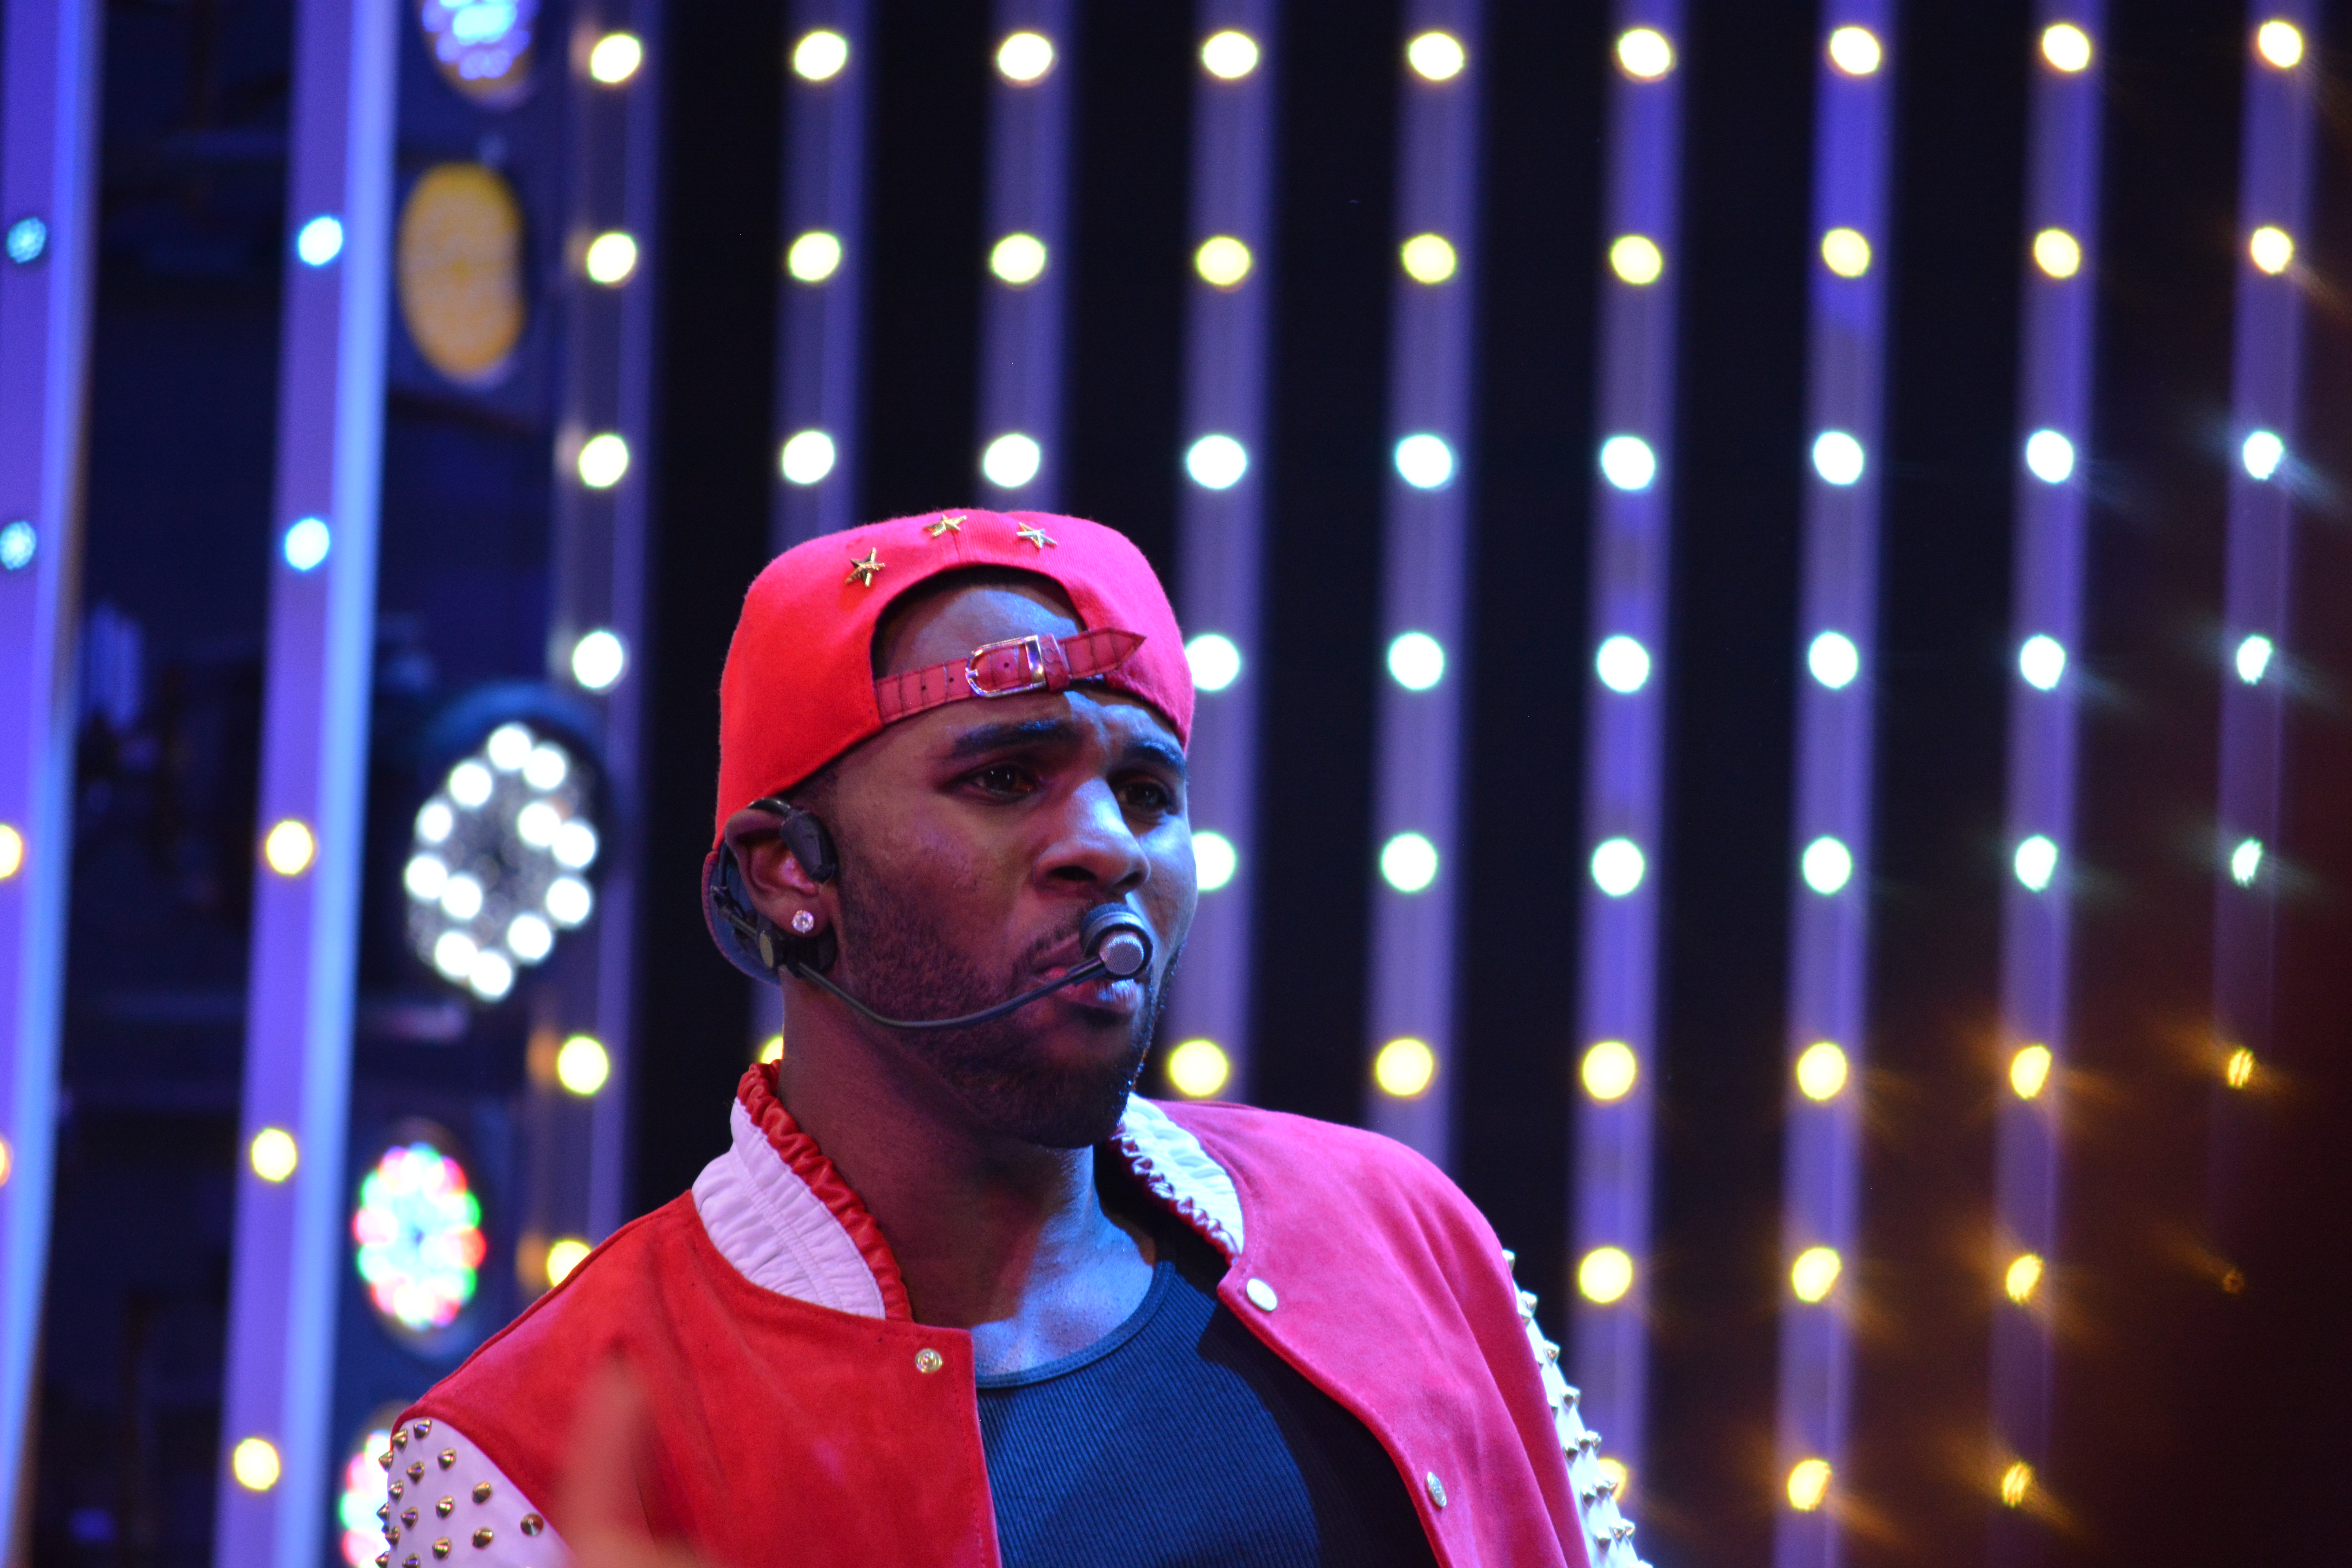 Jason Derulo And Jake Miller Perform At The Universal Citywalk Five